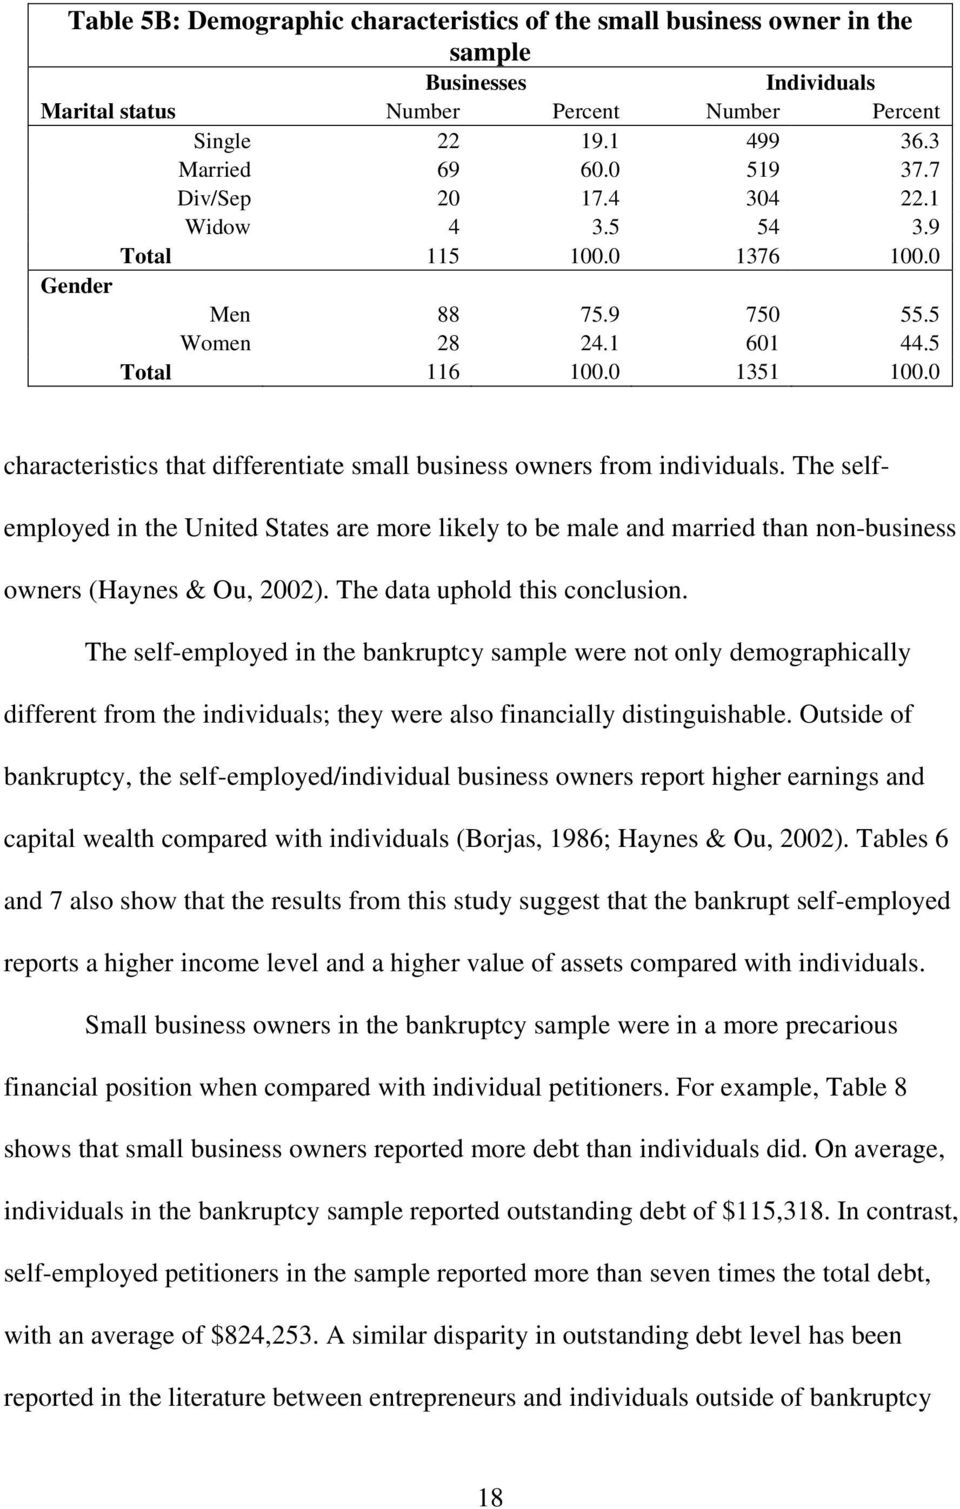 0 characteristics that differentiate small business owners from individuals. The selfemployed in the United States are more likely to be male and married than non-business owners (Haynes & Ou, 2002).